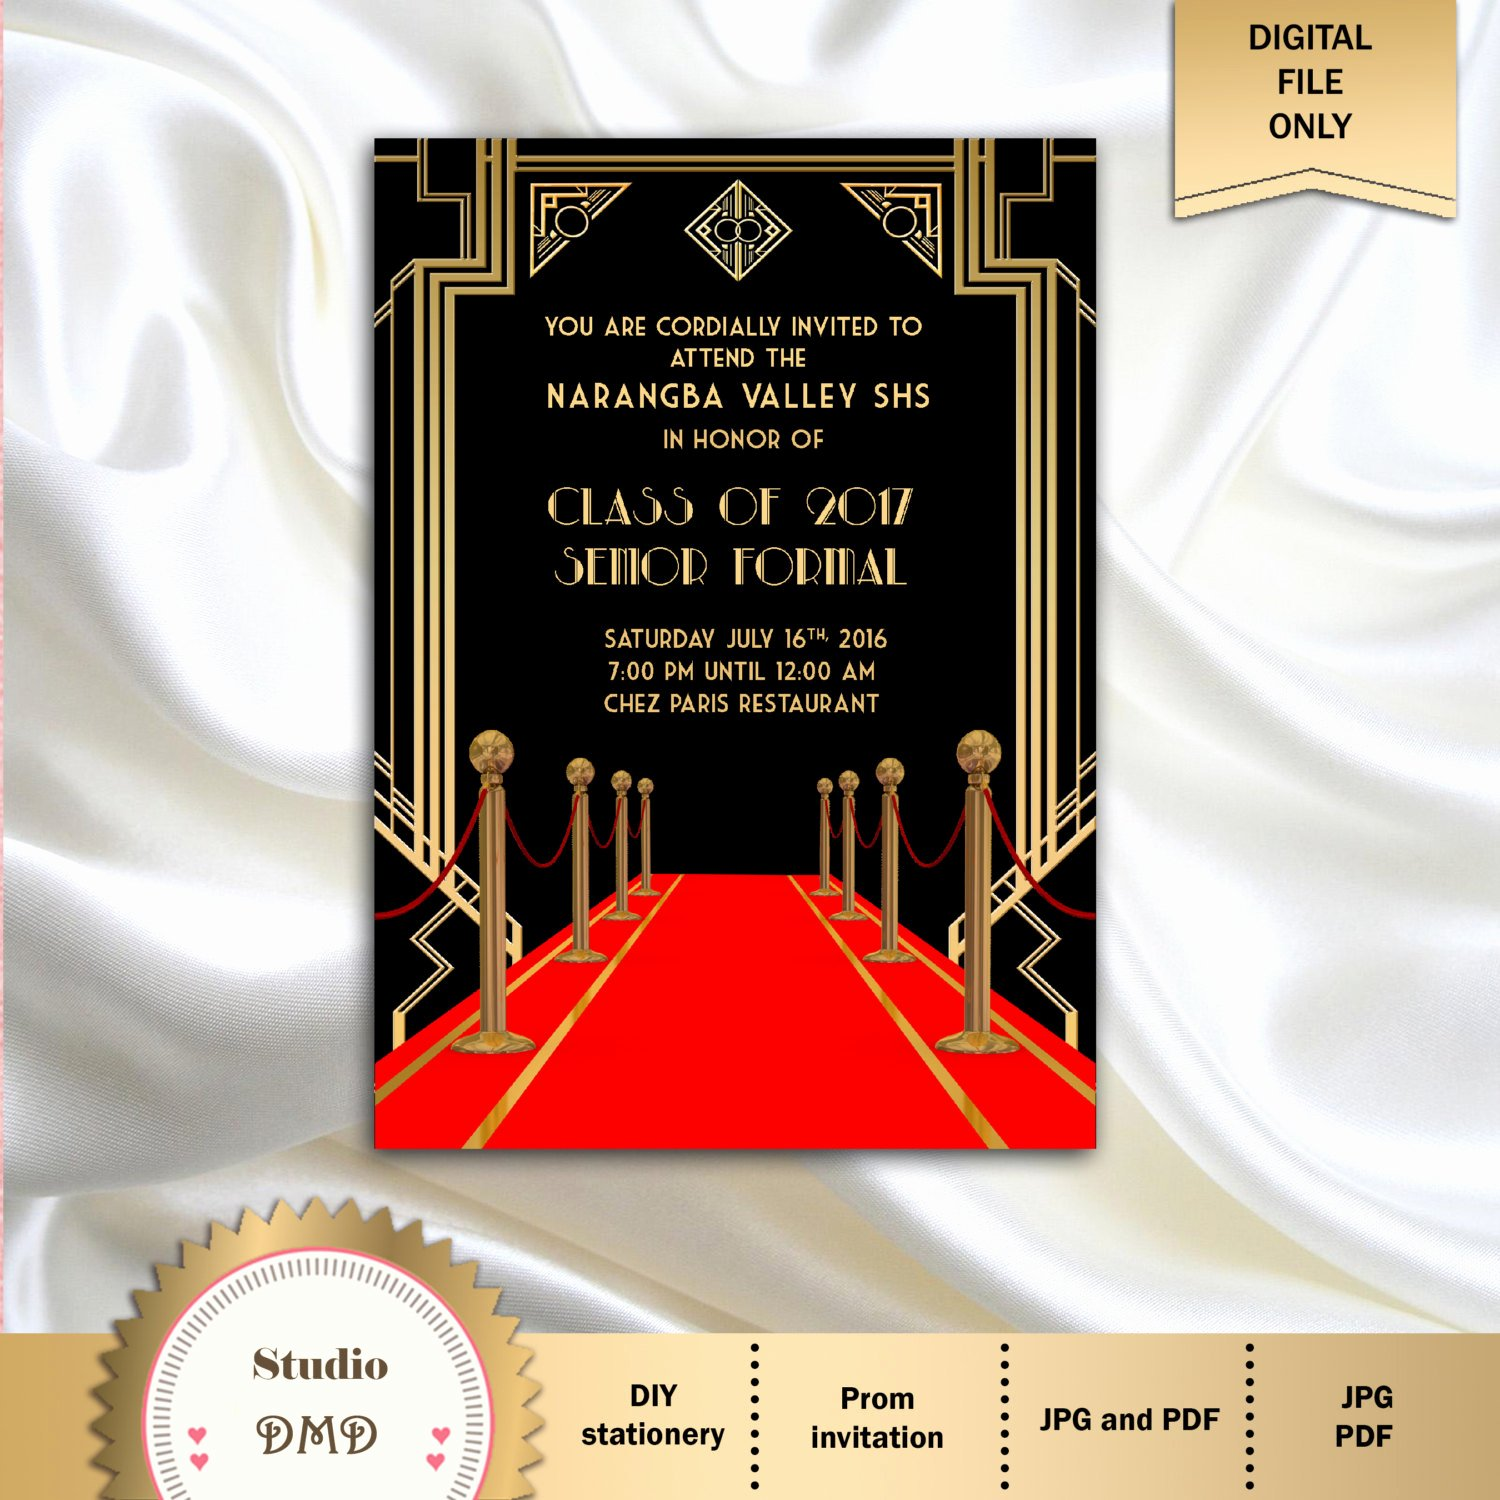 Great Gatsby Prom Invitations Awesome Great Gatsby Style Art Deco Prom Invitation Red Carpet Prom